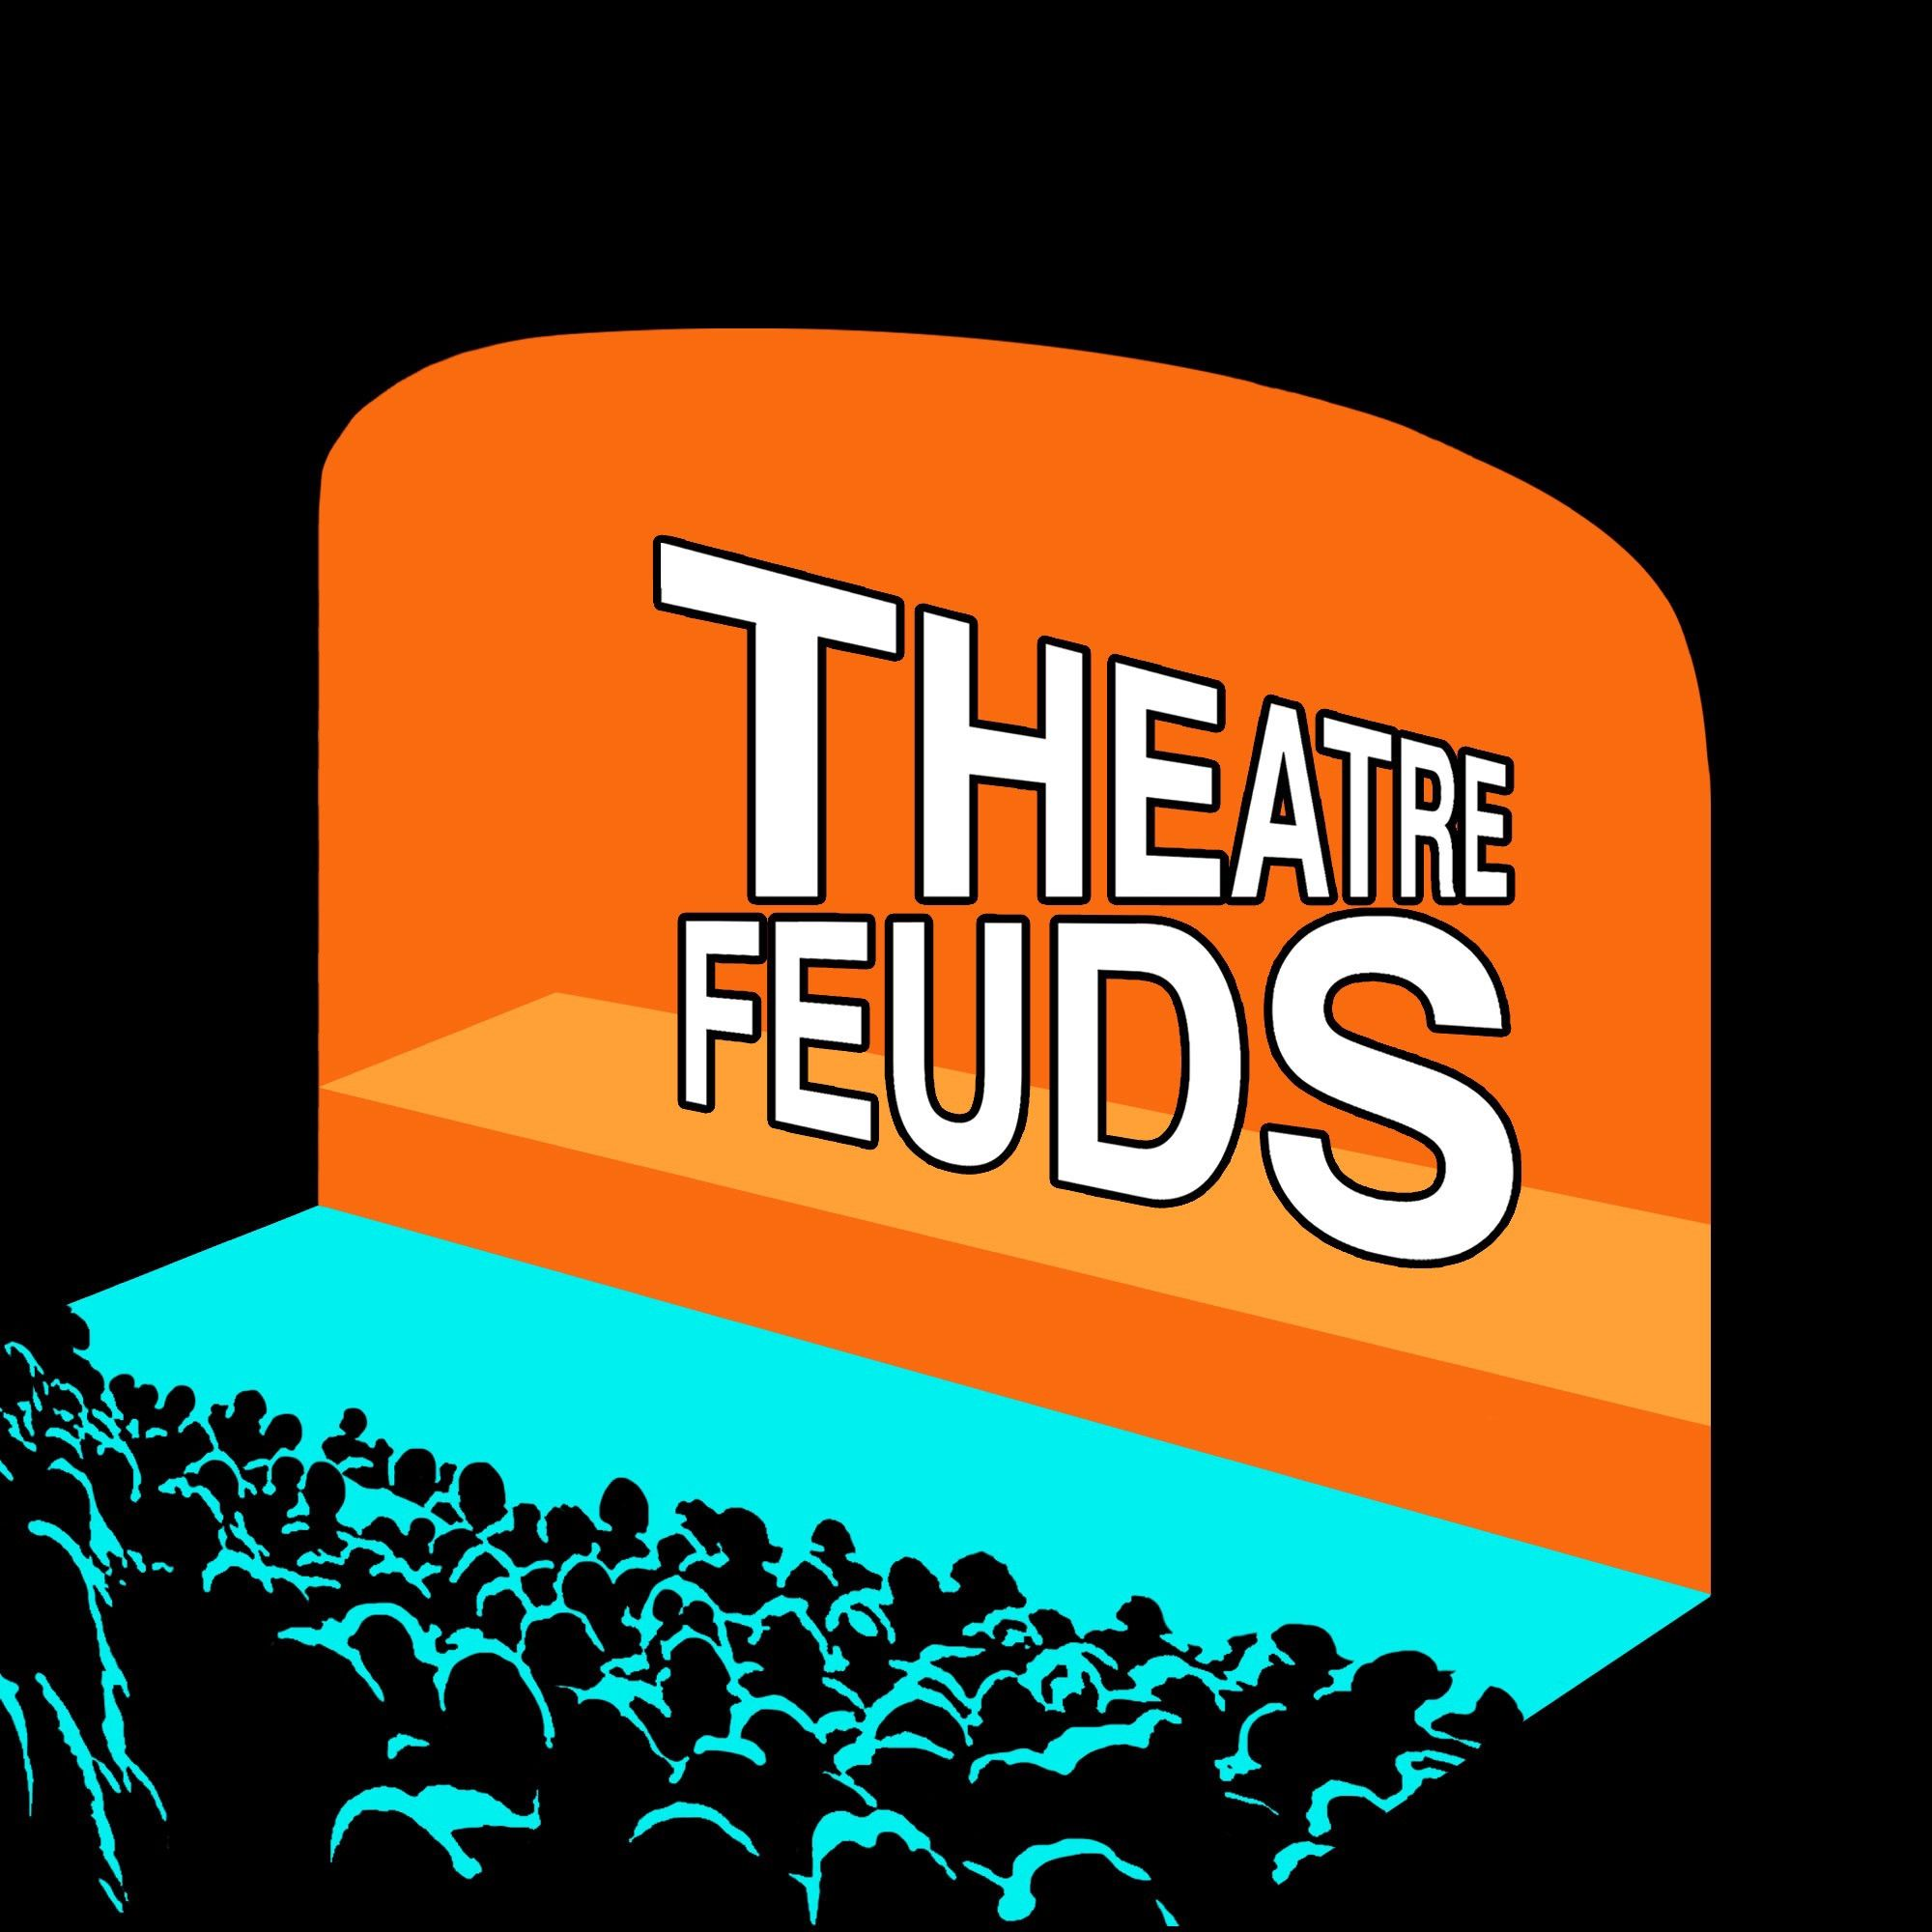 Theatre Feuds Episode 1 - 'Should Harry Potter be onstage?' and other questions